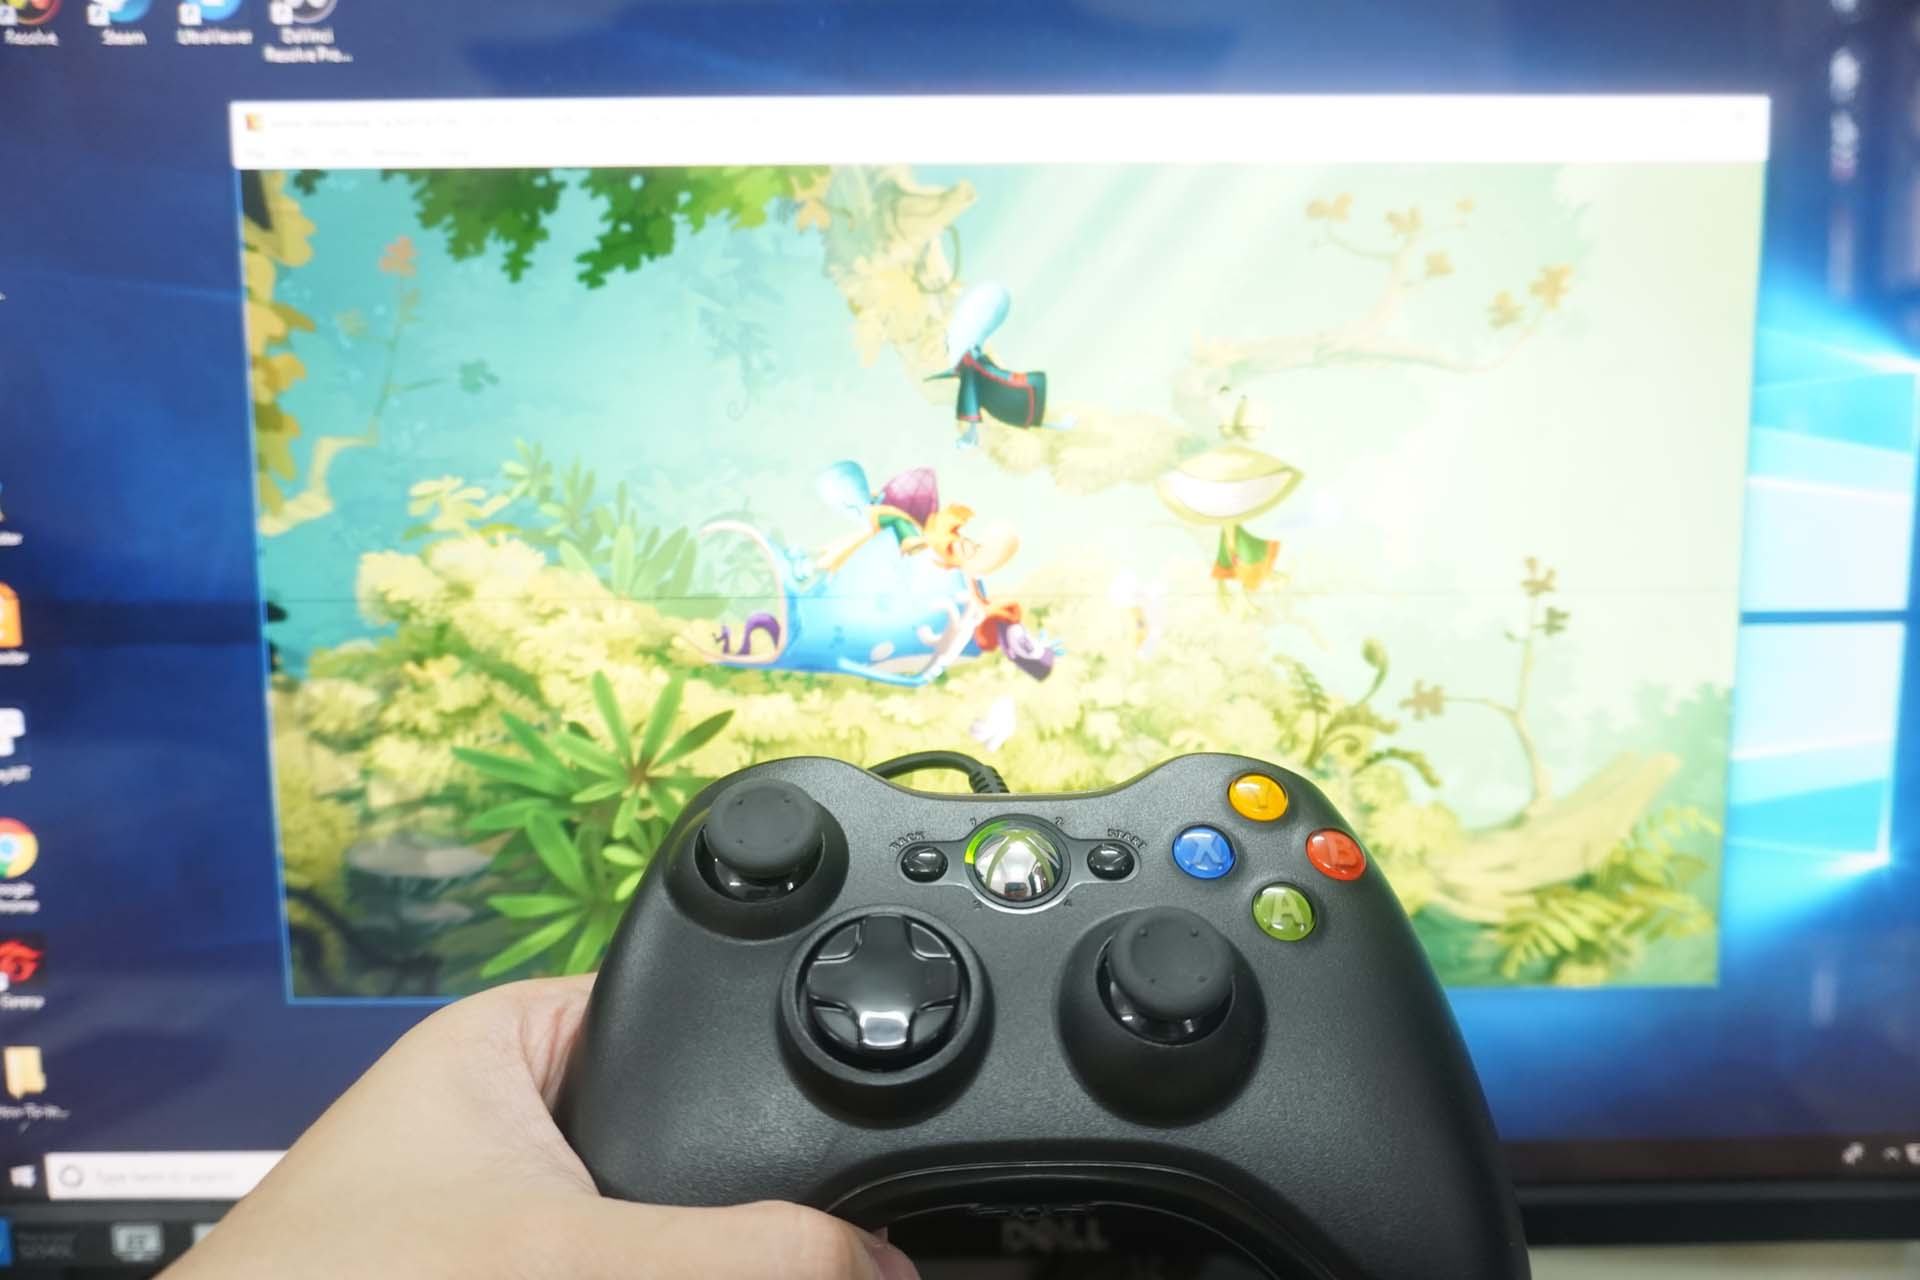 How To Connect An Xbox 360 Wired Controller To Windows 10 Pc Windows 10 Free Apps Windows 10 Free Apps